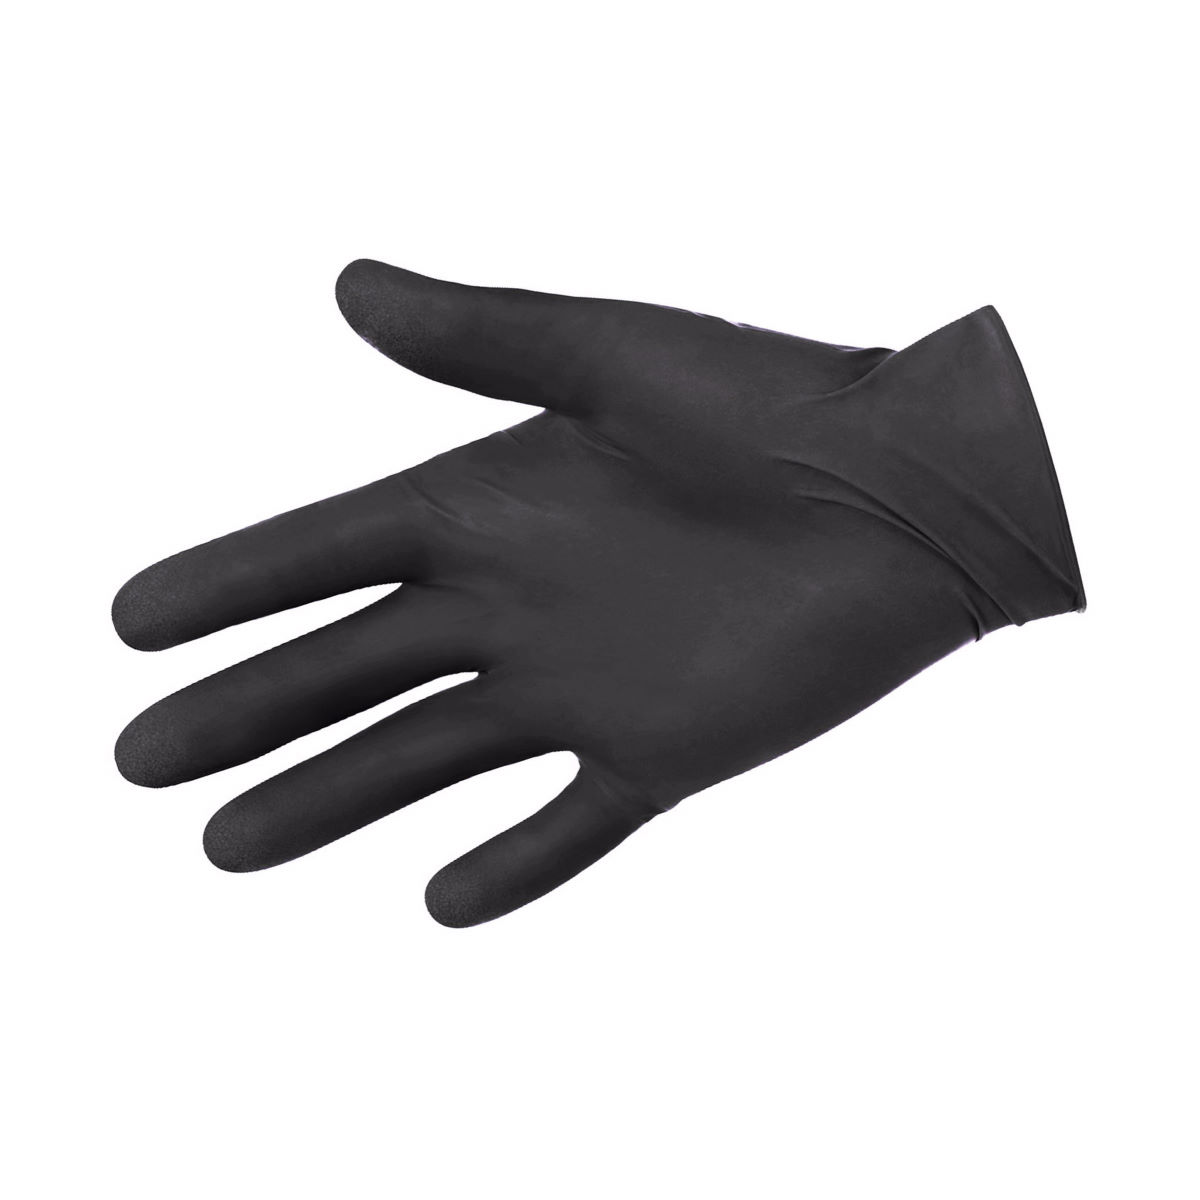 Guantes para mecánicos X-Tools (nitrilo) - Guantes desechables